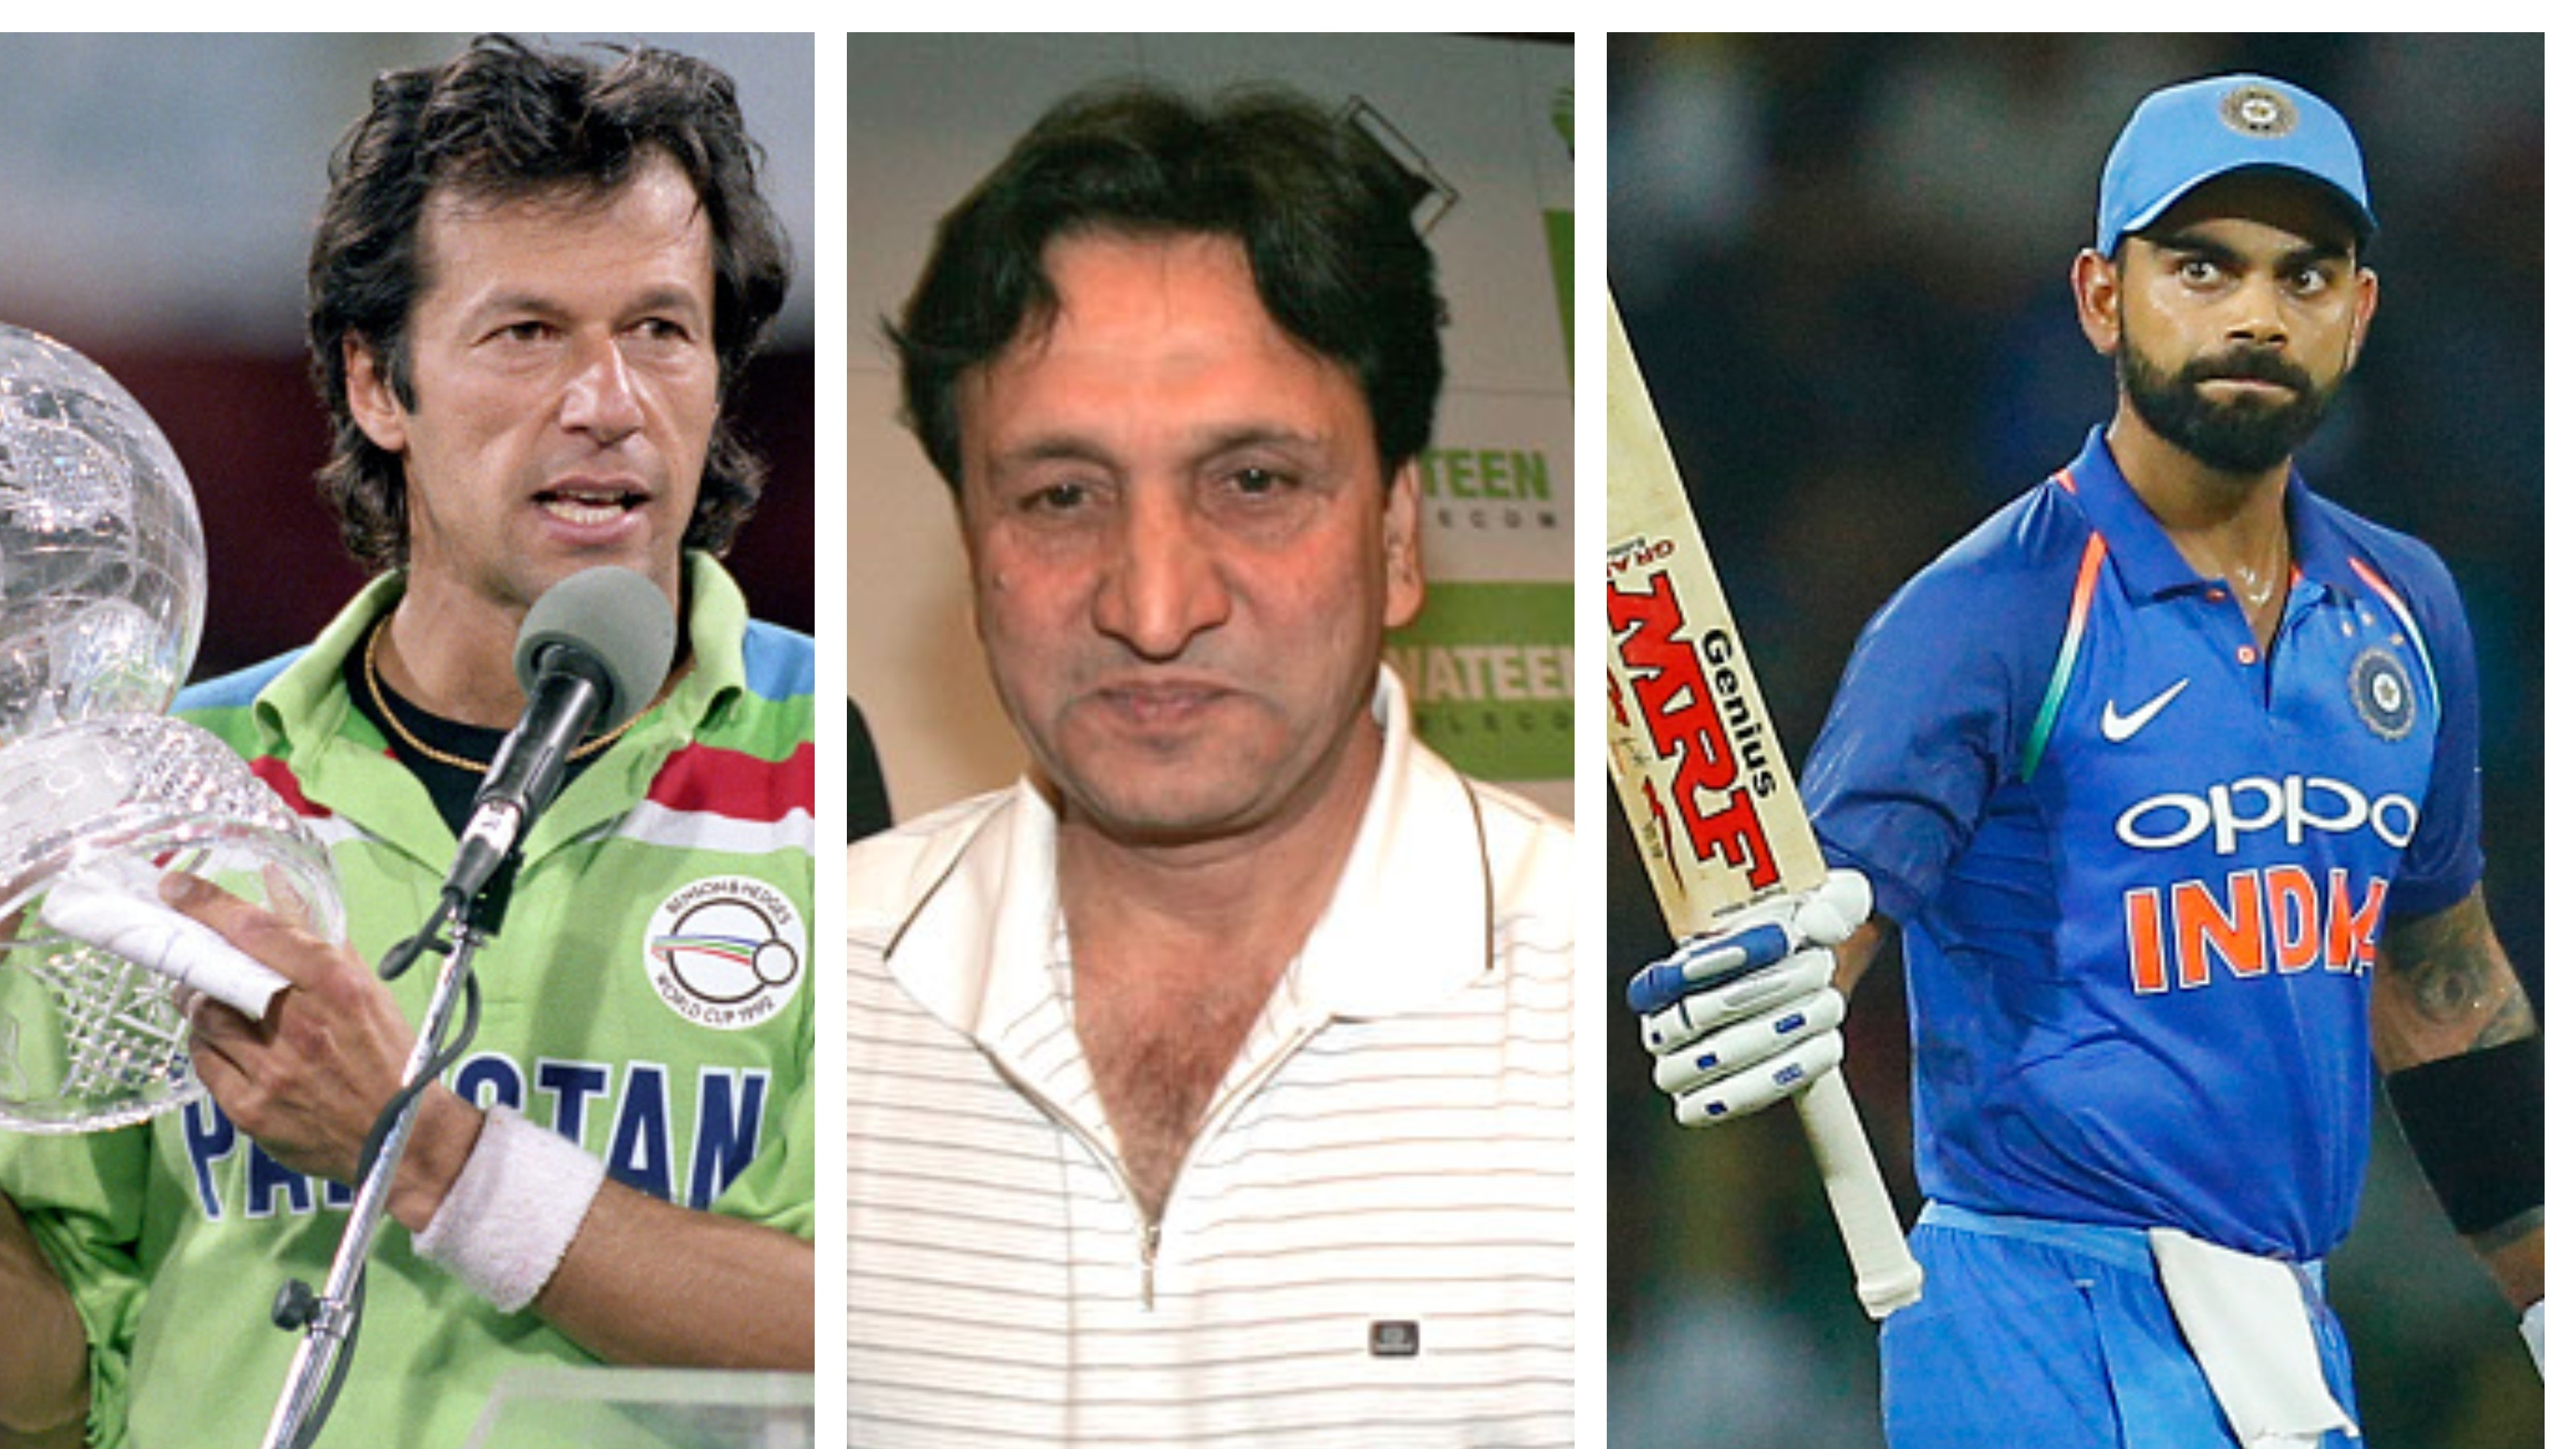 Kohli leads from the front like once Imran Khan did, says Abdul Qadir